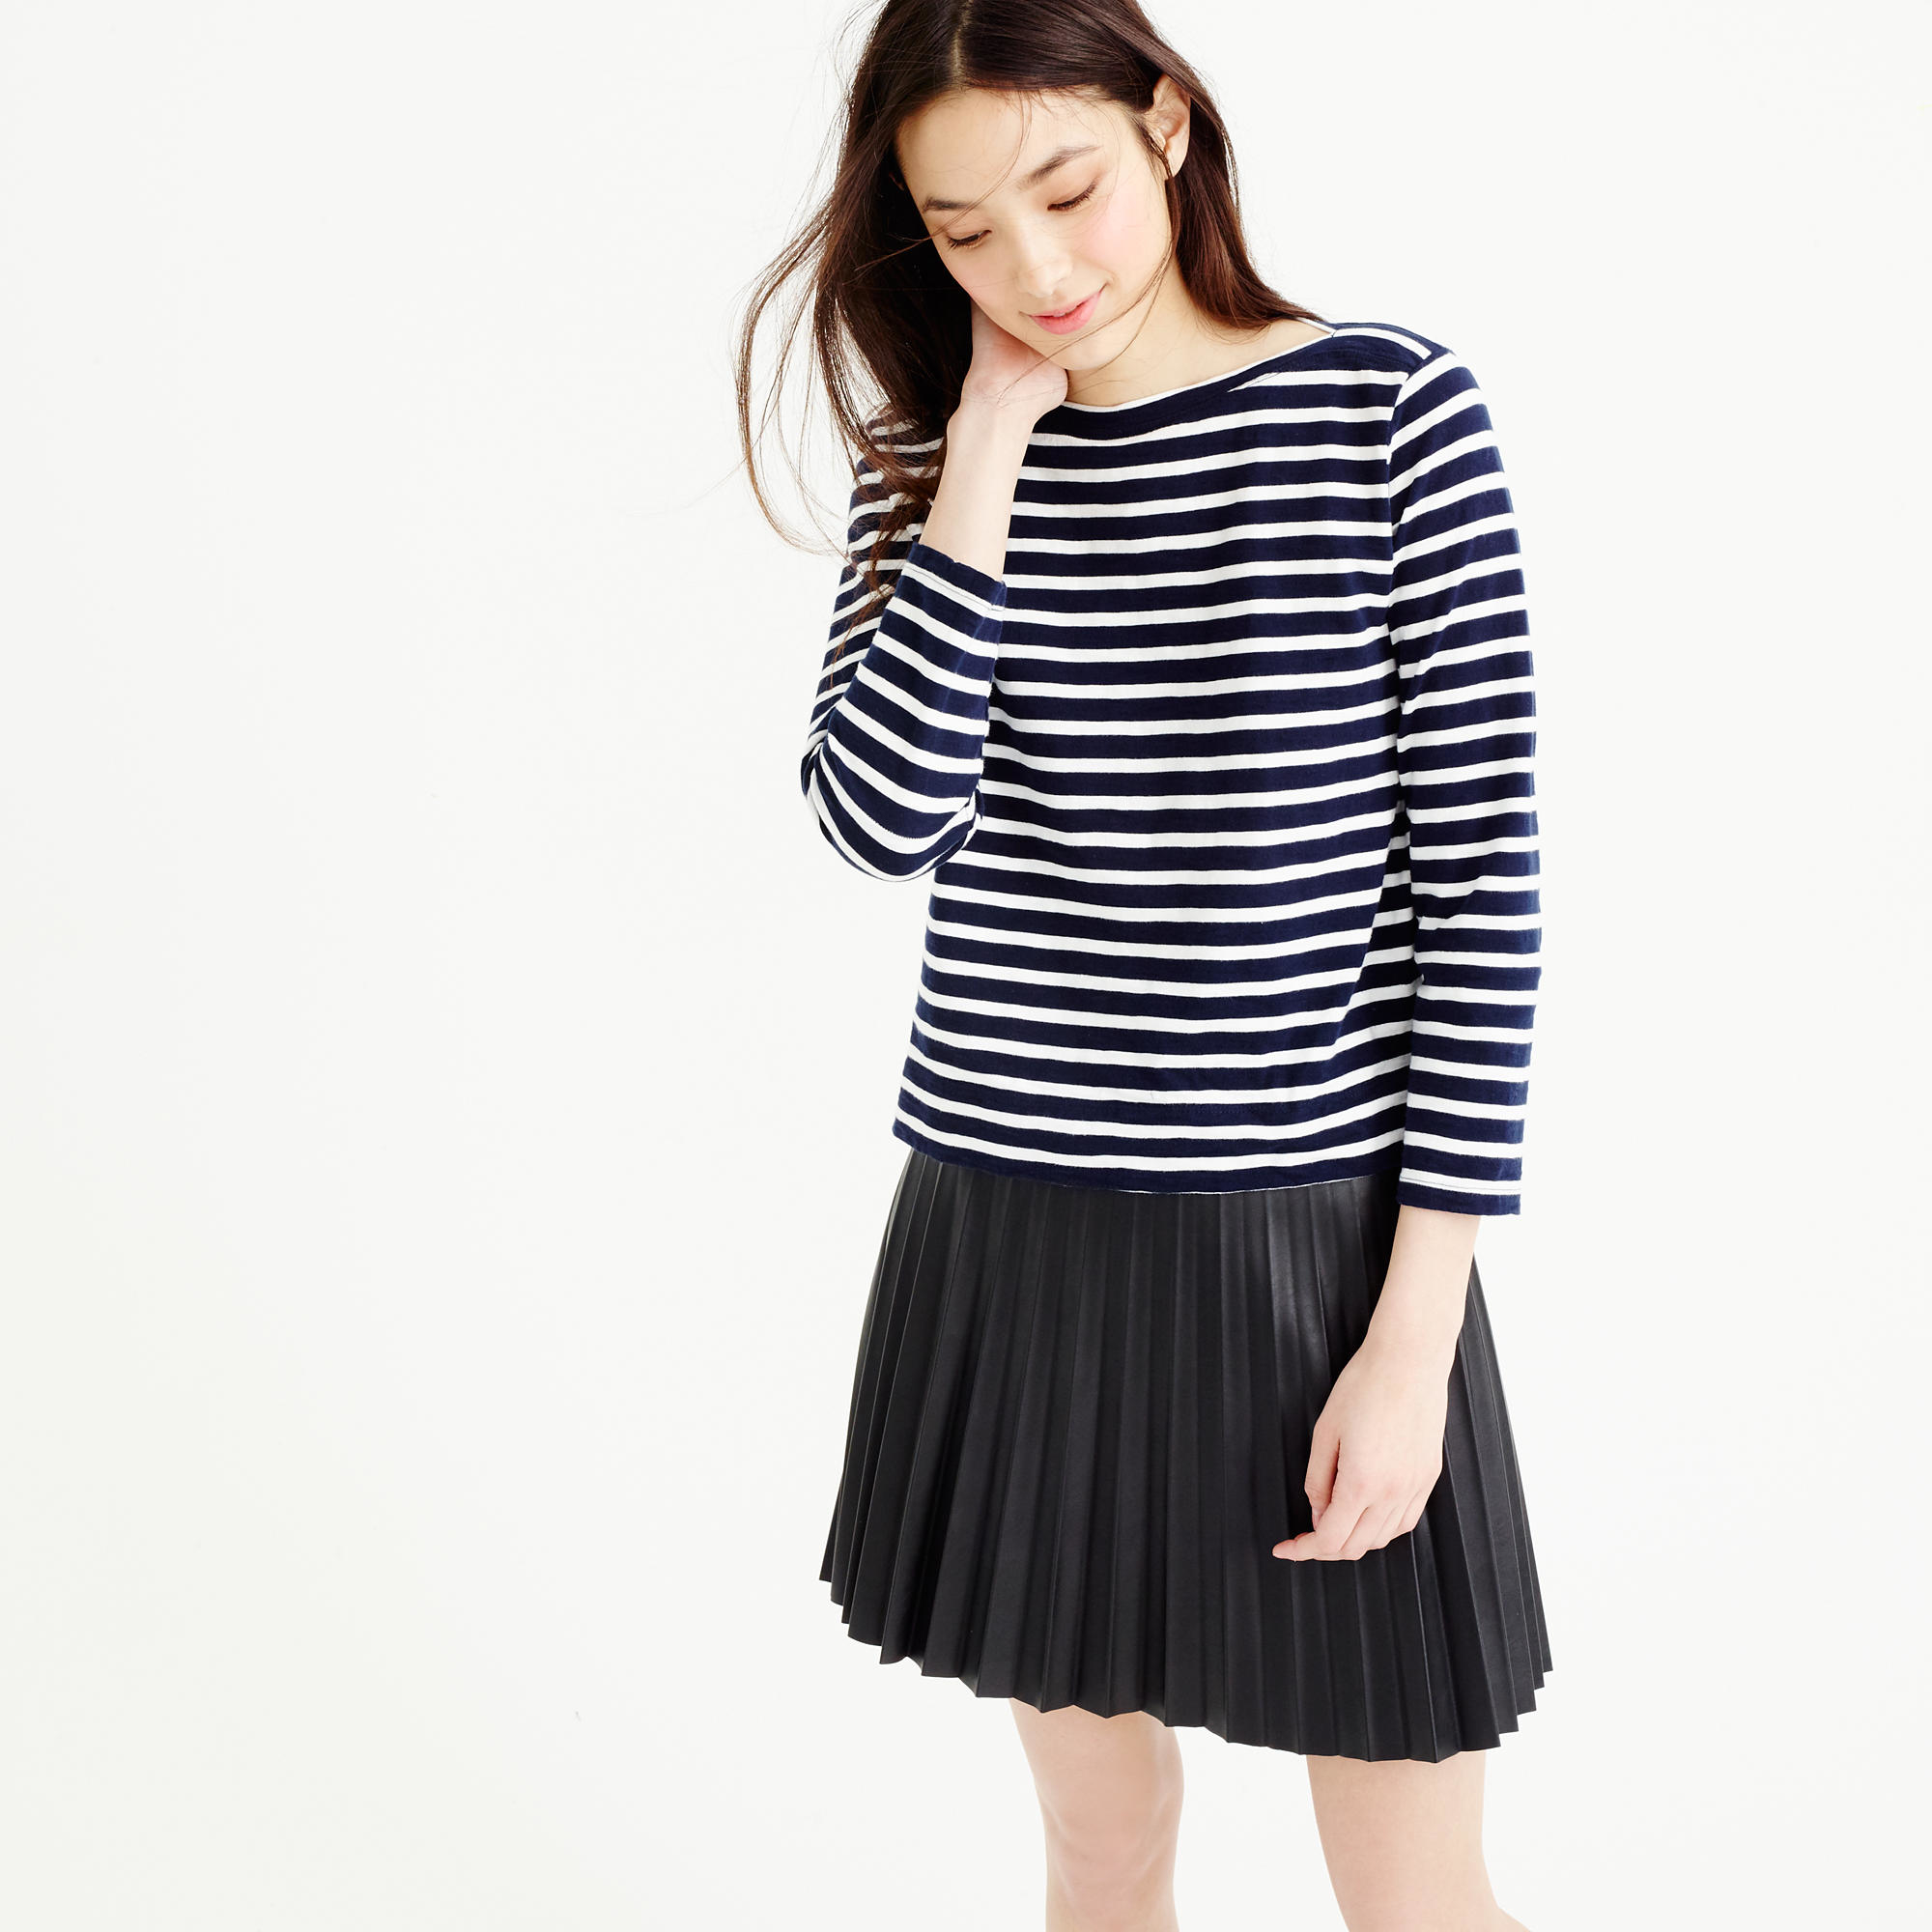 1df9115fa1 J.Crew Midweight Striped Boatneck T-shirt in Blue - Lyst